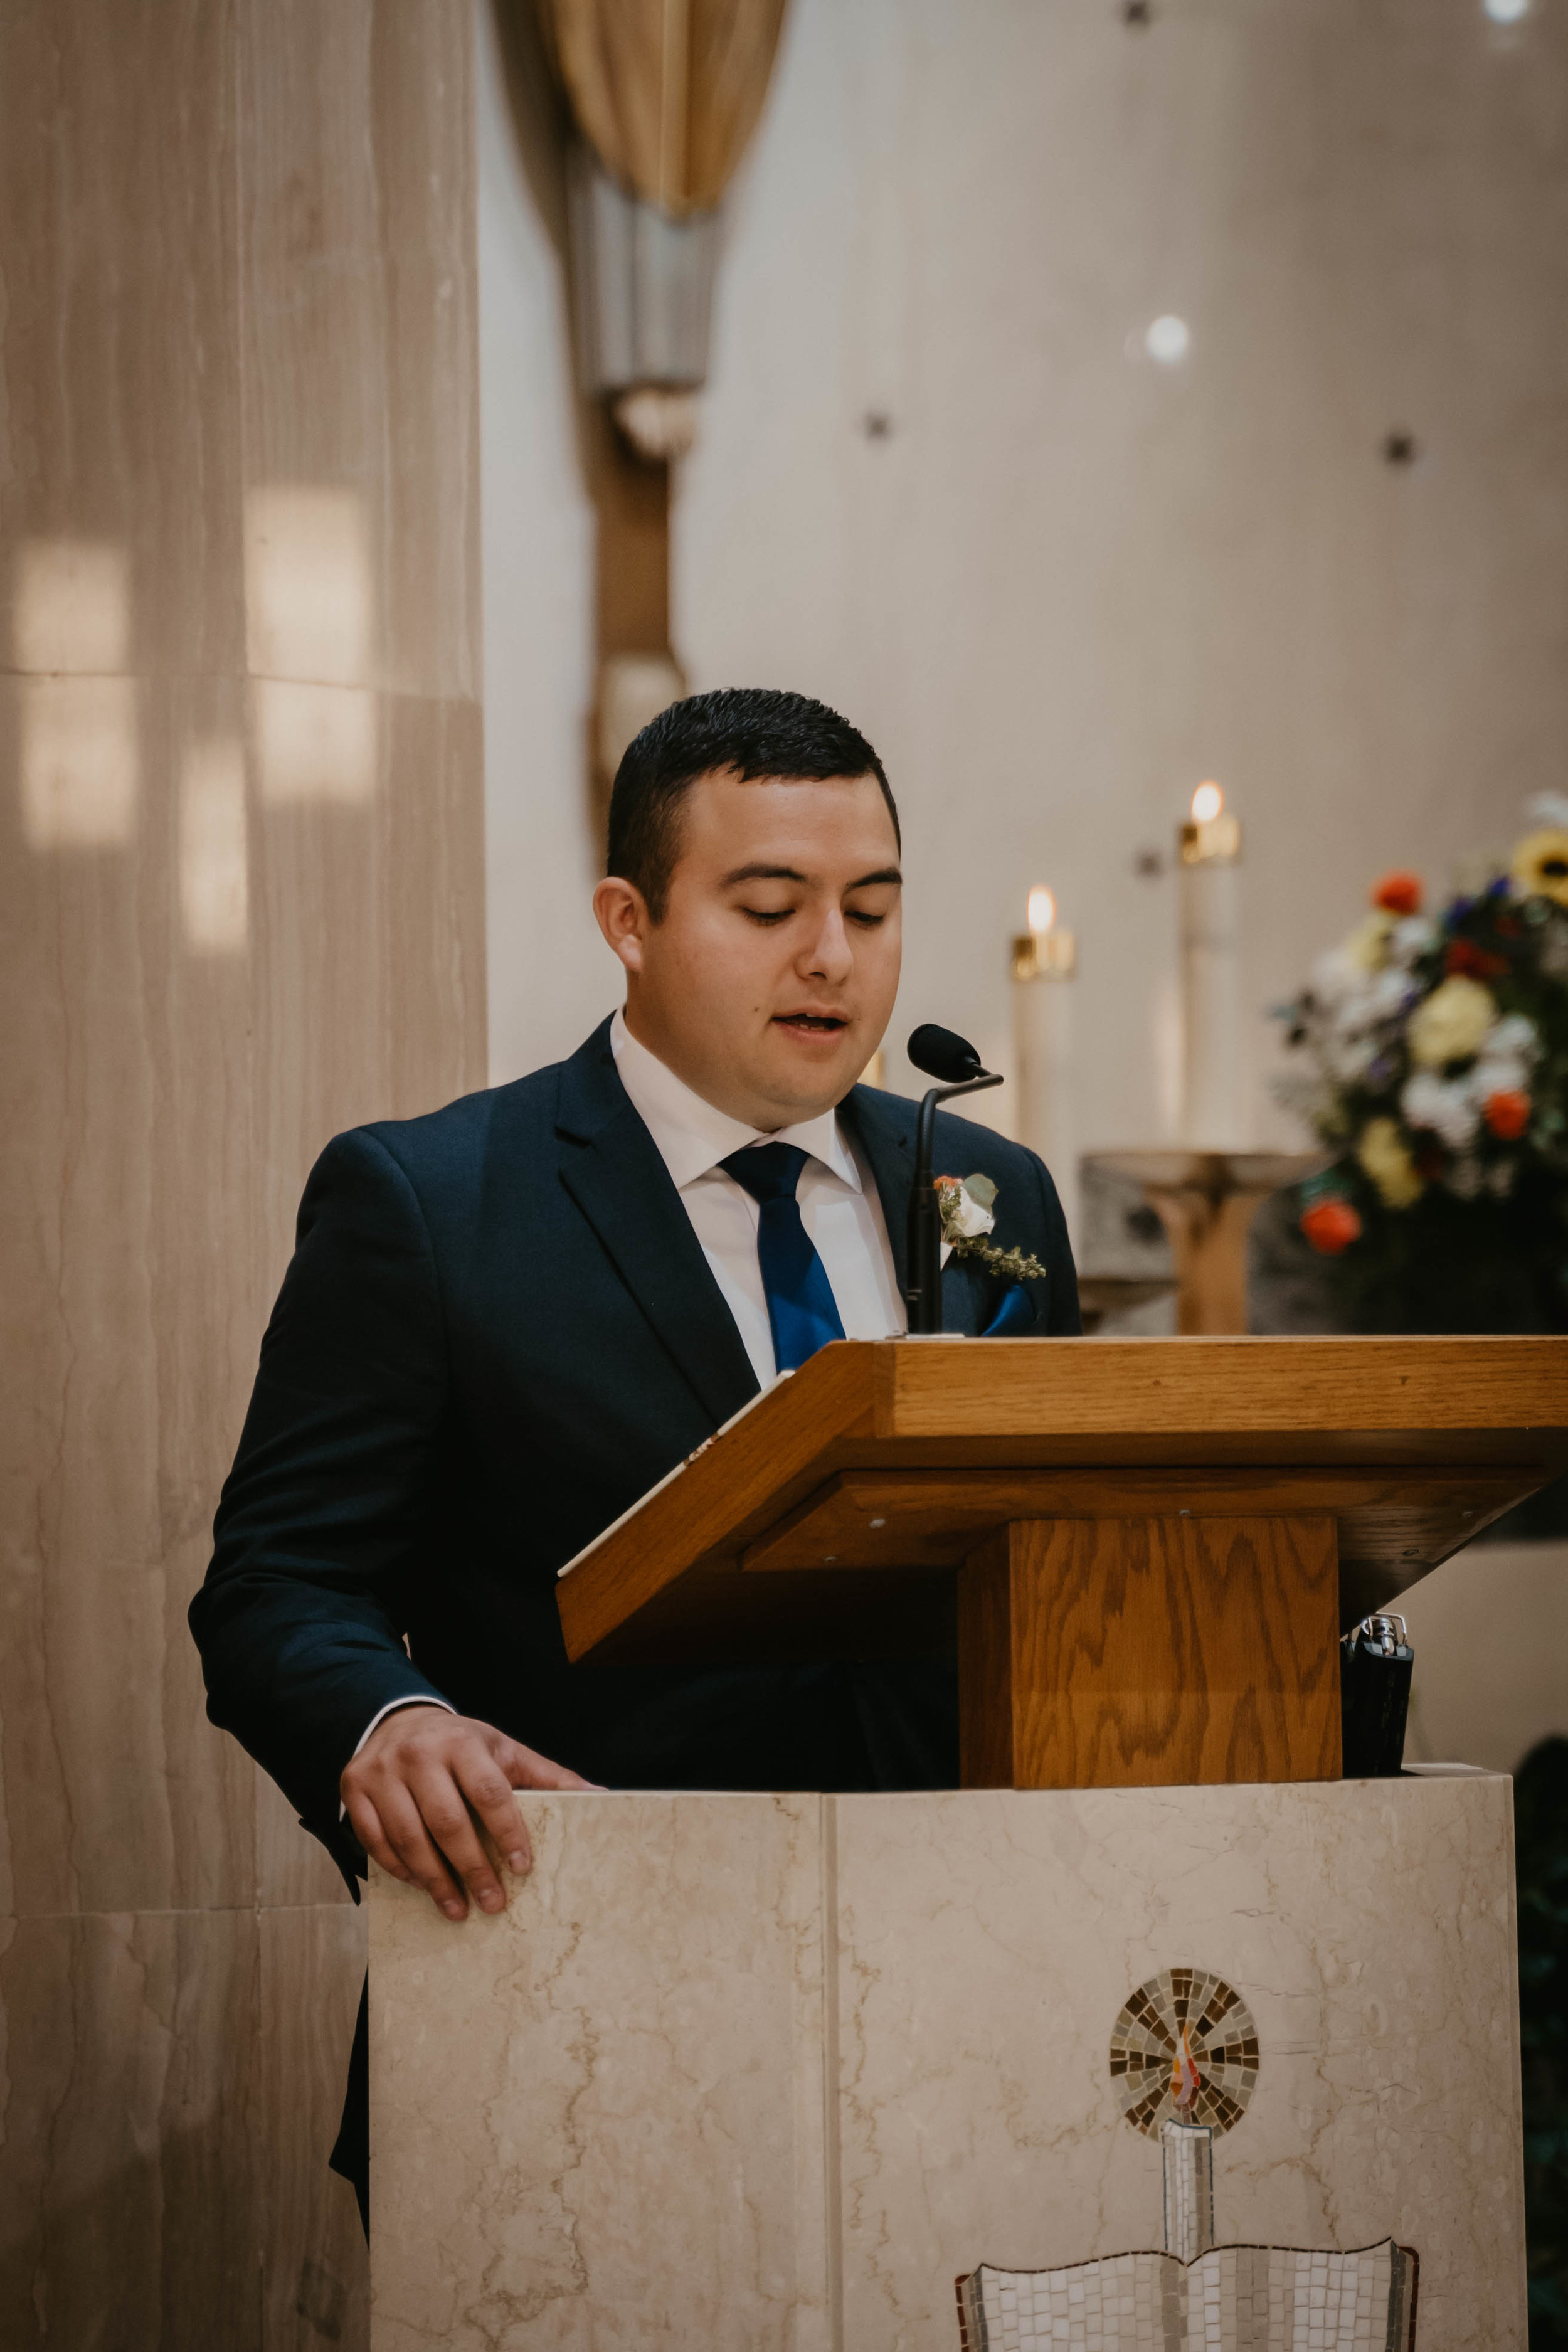 austin-wedding-videographer (389 of 999).jpg